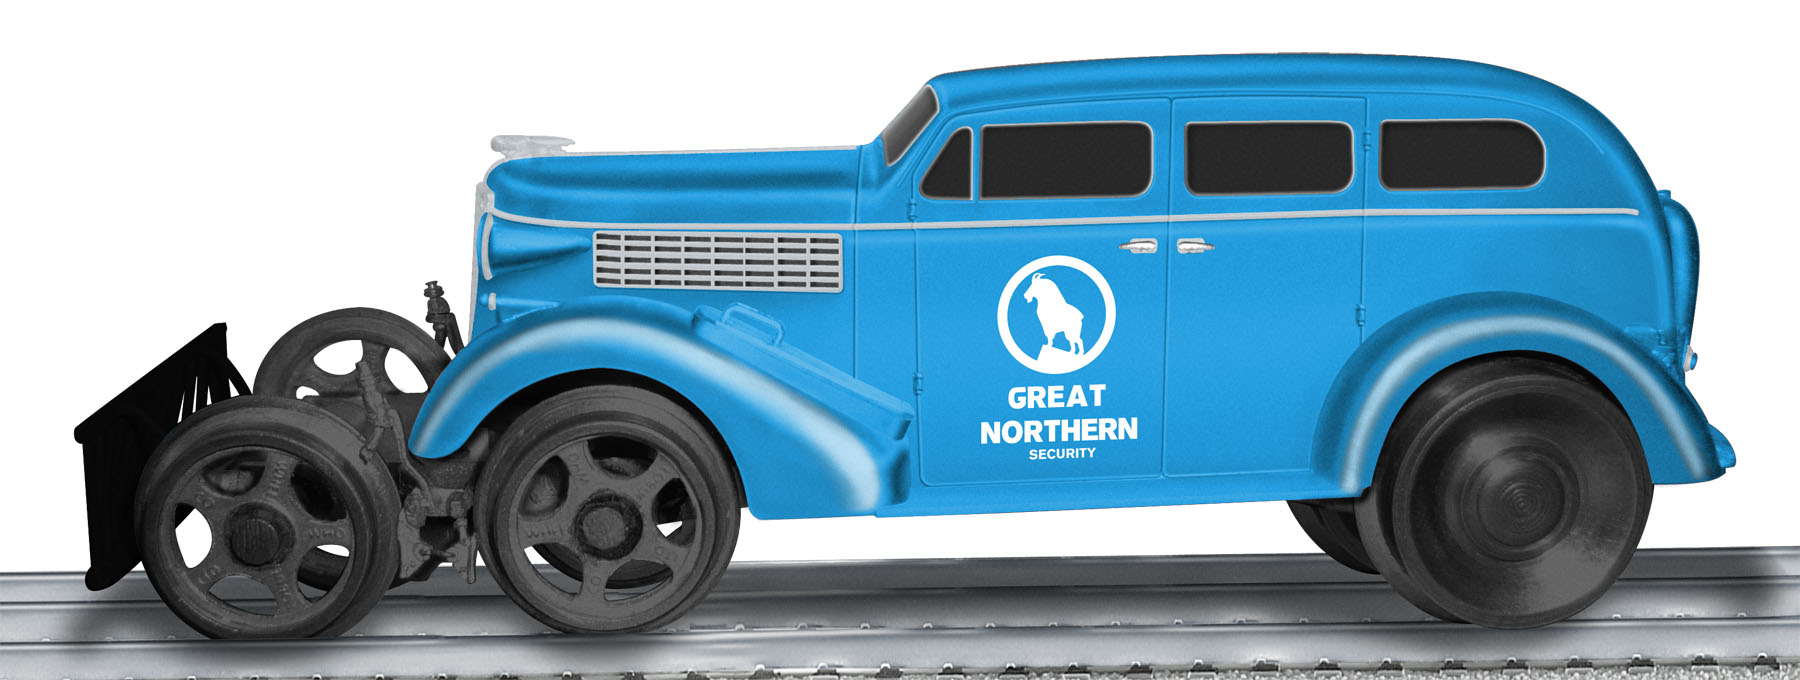 Great northern early era inspection vehicle for Nearest motor vehicle inspection station